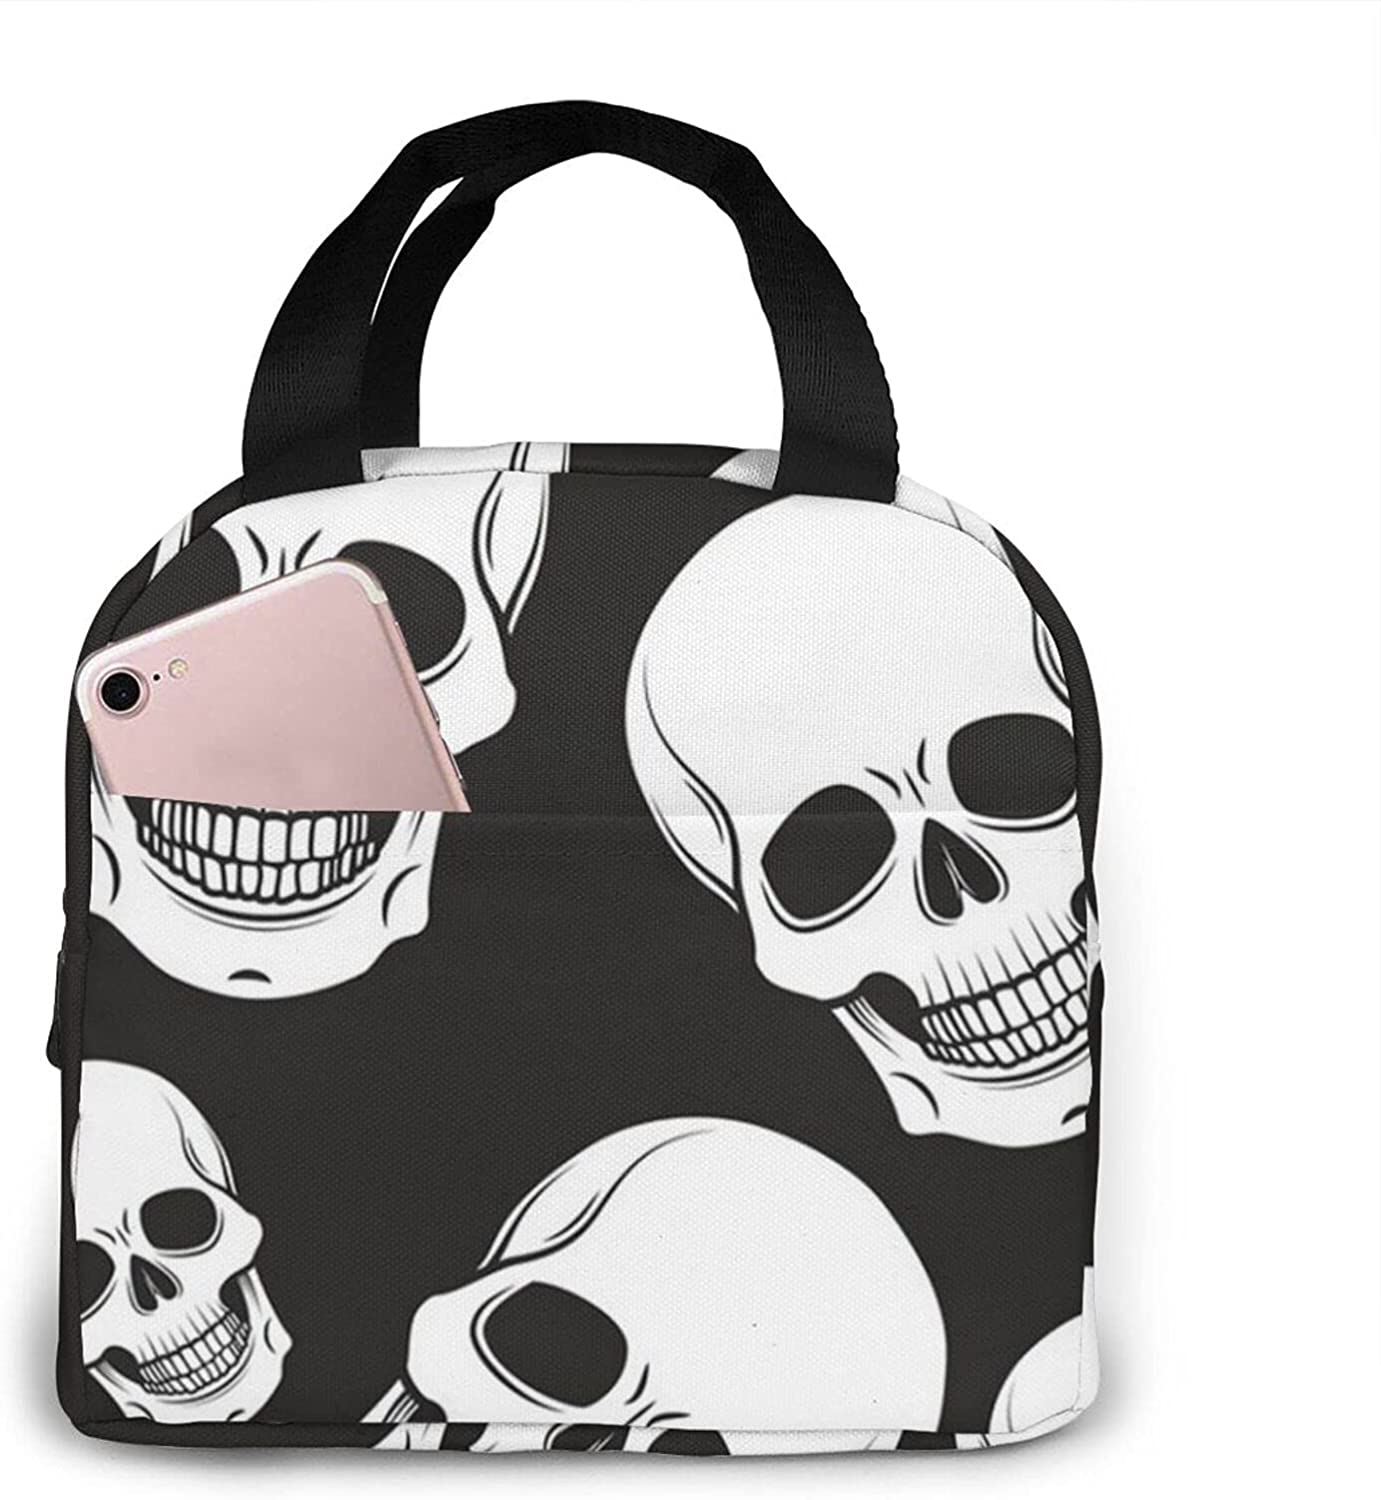 SWEET TANG Lunch Box Black and Skull Mom for Organizer Popularity New sales Bag White